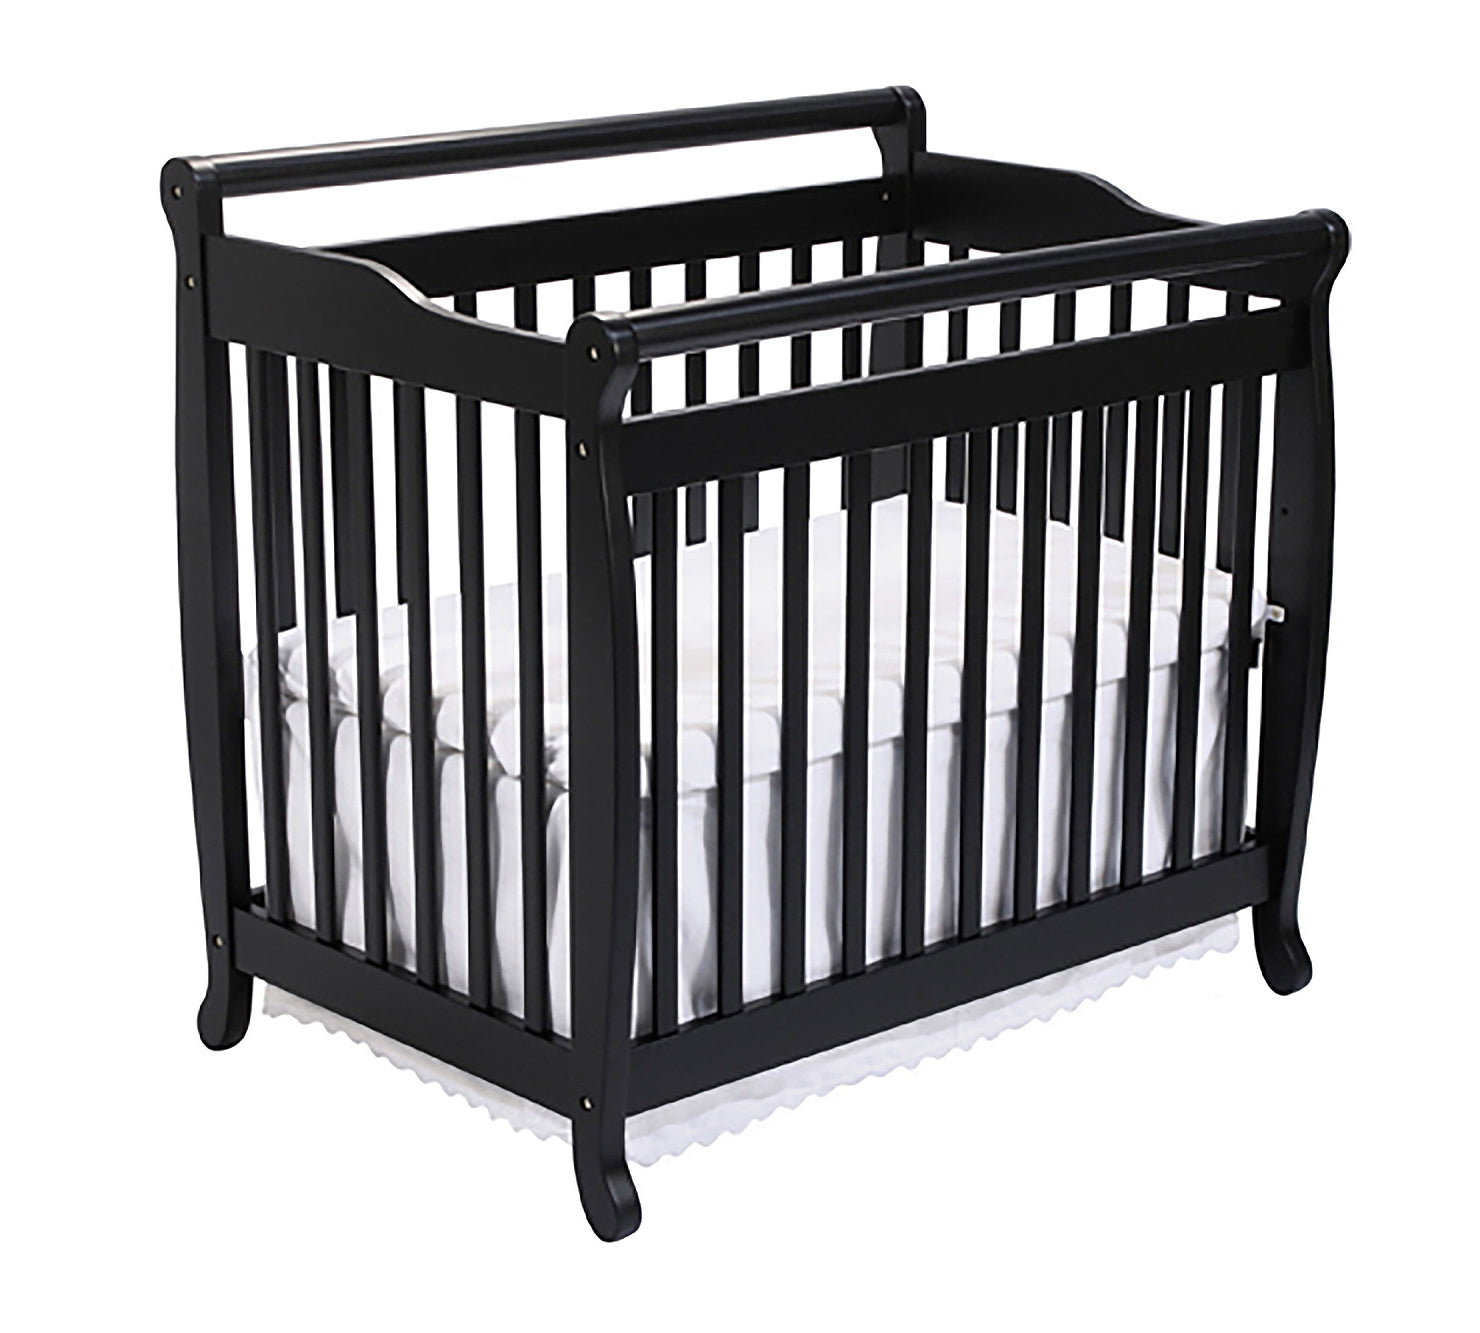 DaVinci Emily Mini 2-in-1 Convertible Wood Baby Crib